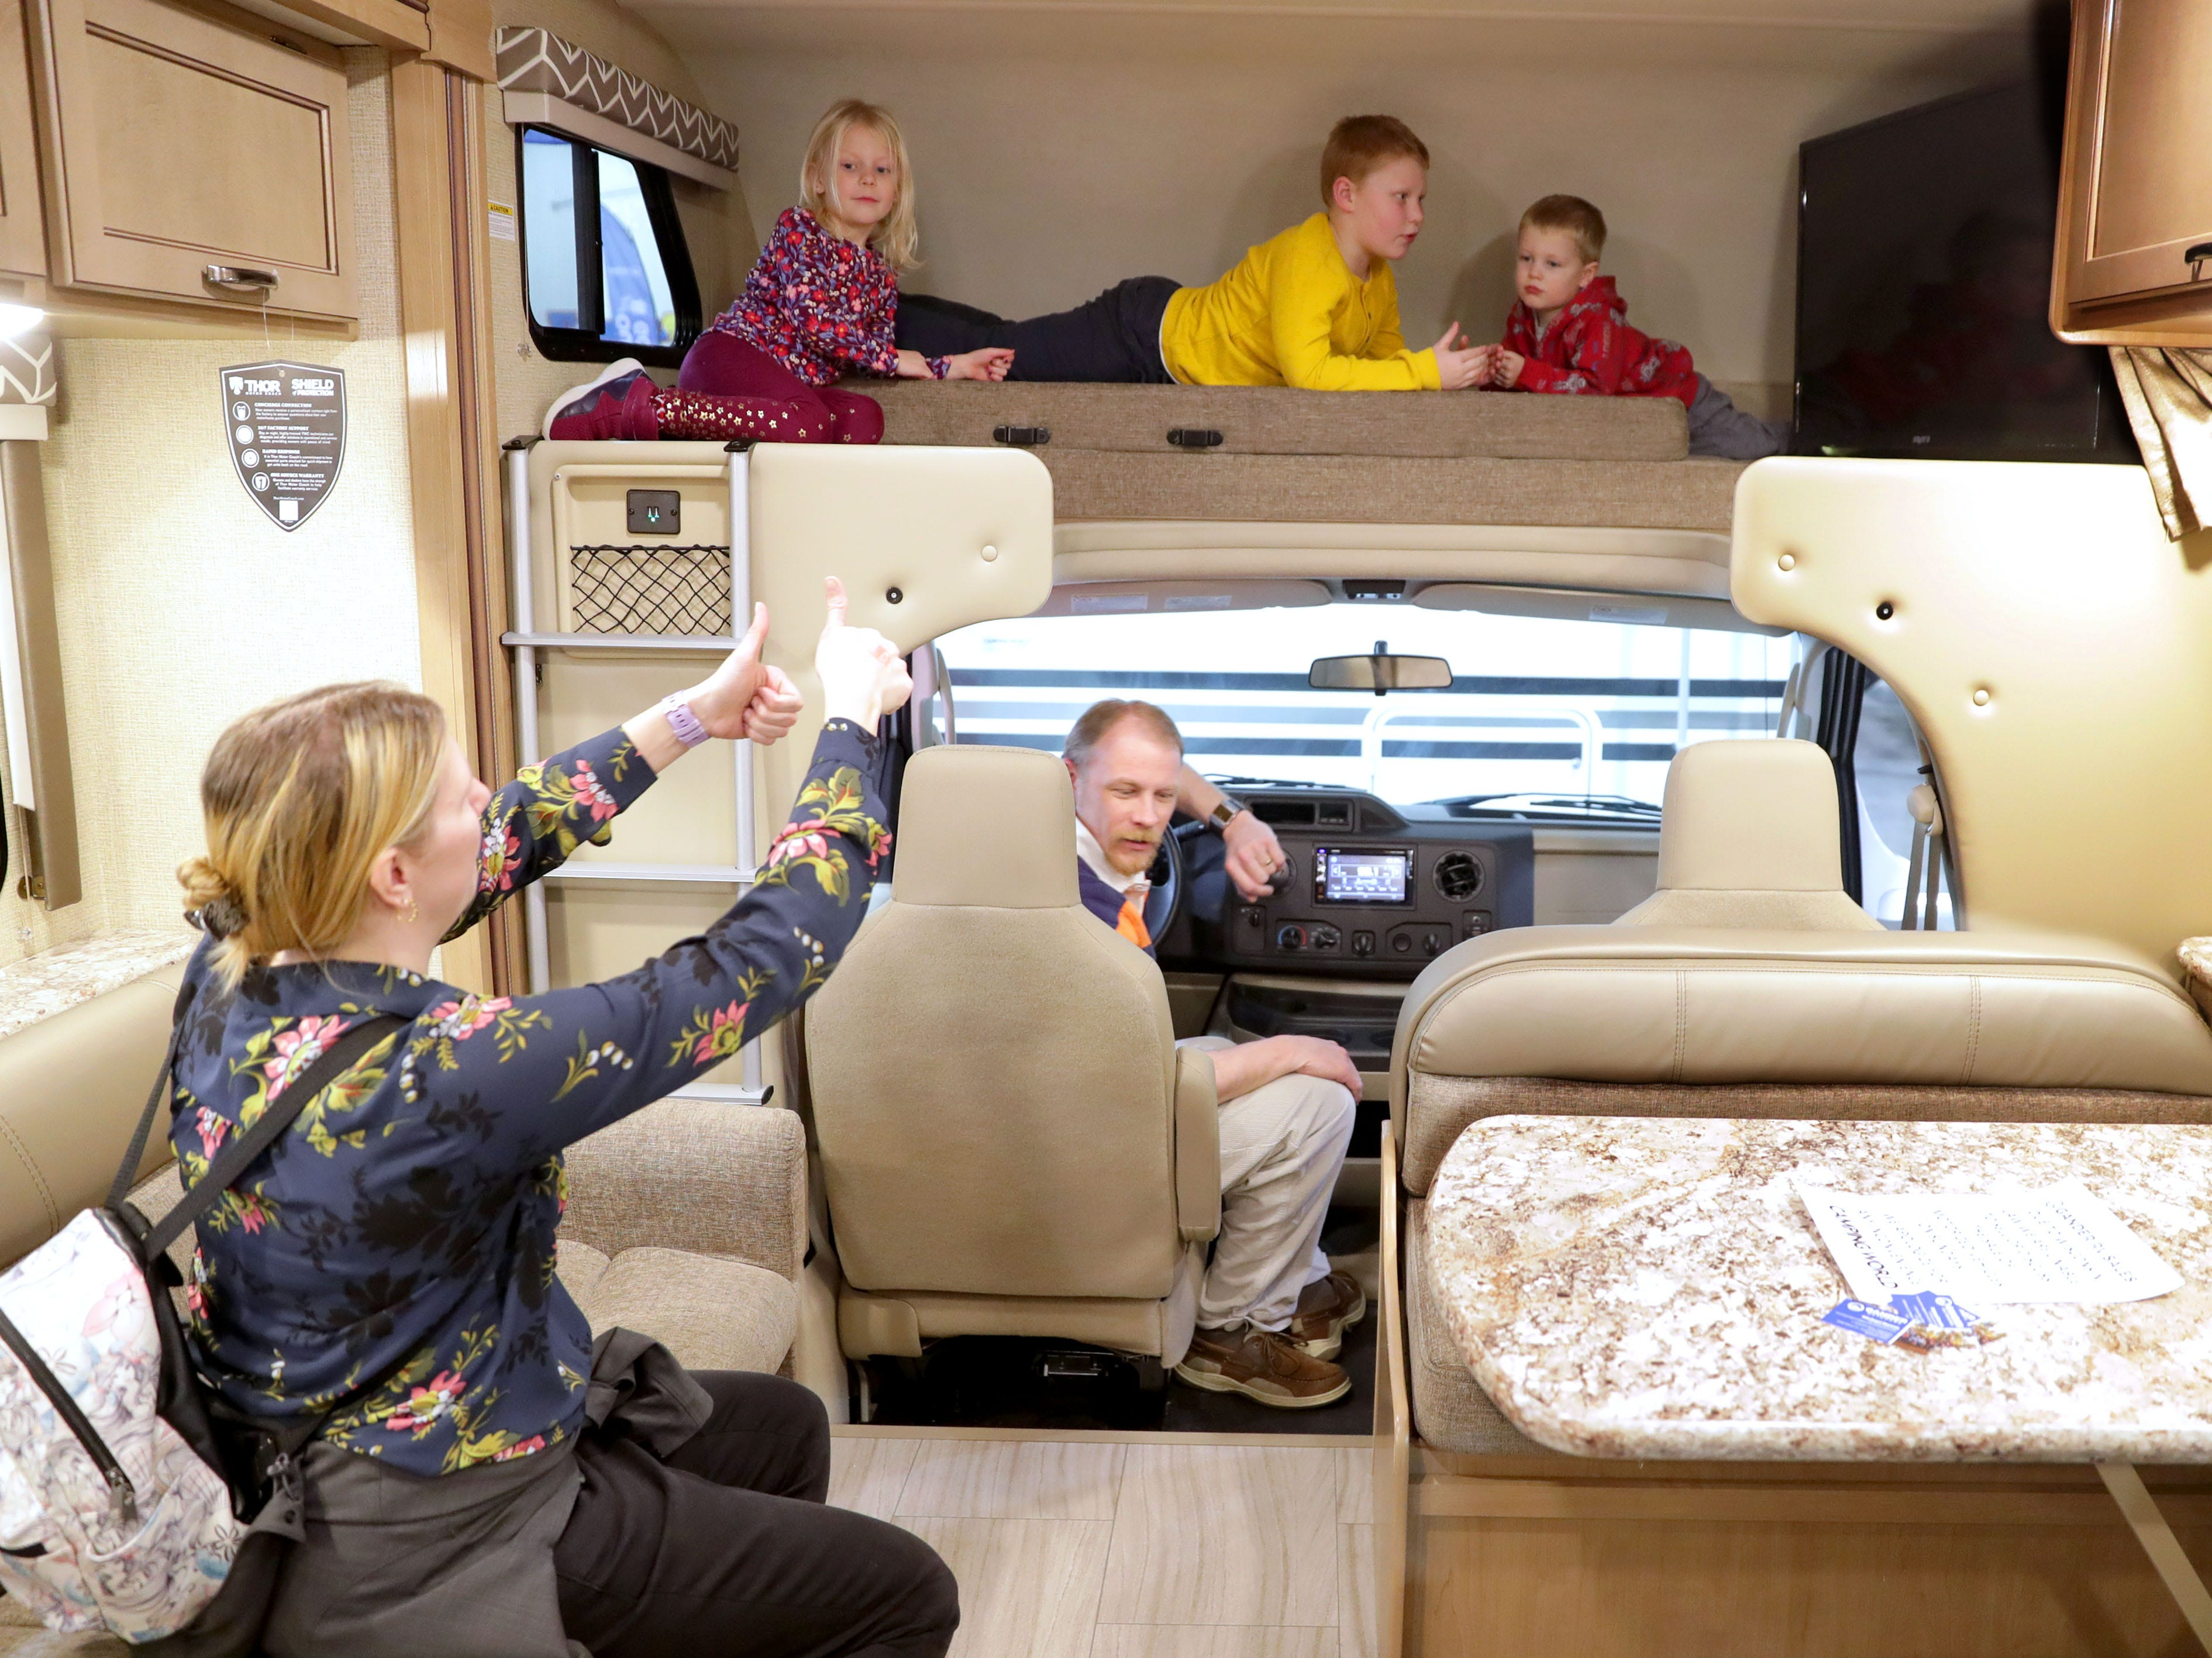 Marlaina Sheahan, 4, and her brothers Carson, 7, and Dennis, 2, sit in the bunk area as their mother, Amy Sheahan gives the thumbs-up while her husband, Brian, sits in the driver's seat of a 2019 Motor Coach Daybreak that lists for $84,999. While the family didn't purchase the RV, they enjoyed looking at the assortment during the 2019 Wisconsin RV Show at the Wisconsin Center in Milwaukee on Sunday. The show ran through Sunday and included RVs, information on campsites, tow vehicle seminars and entertainment.